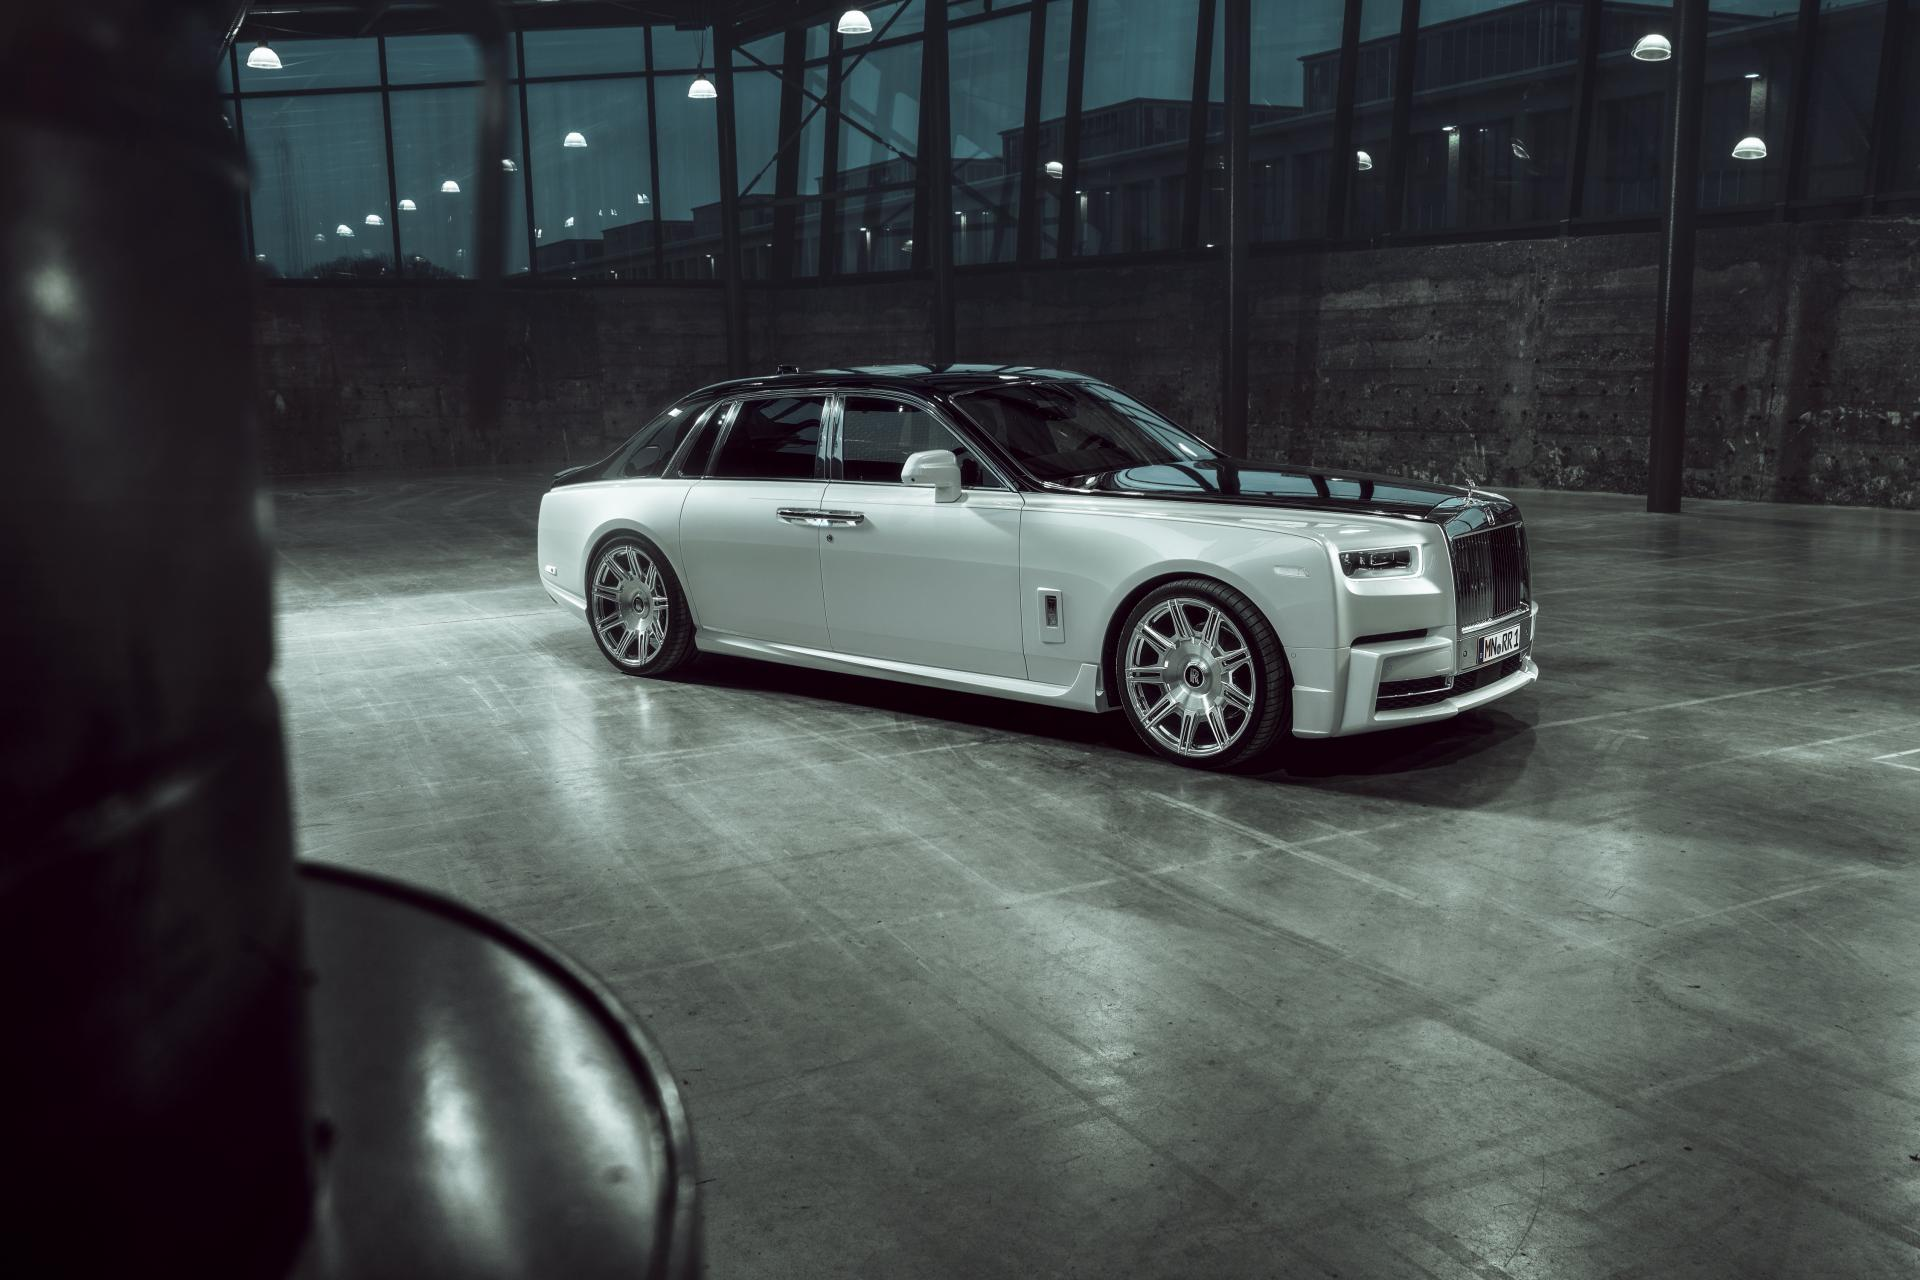 rolls-royce-phantom-tuned-by-spofec-6.jpg